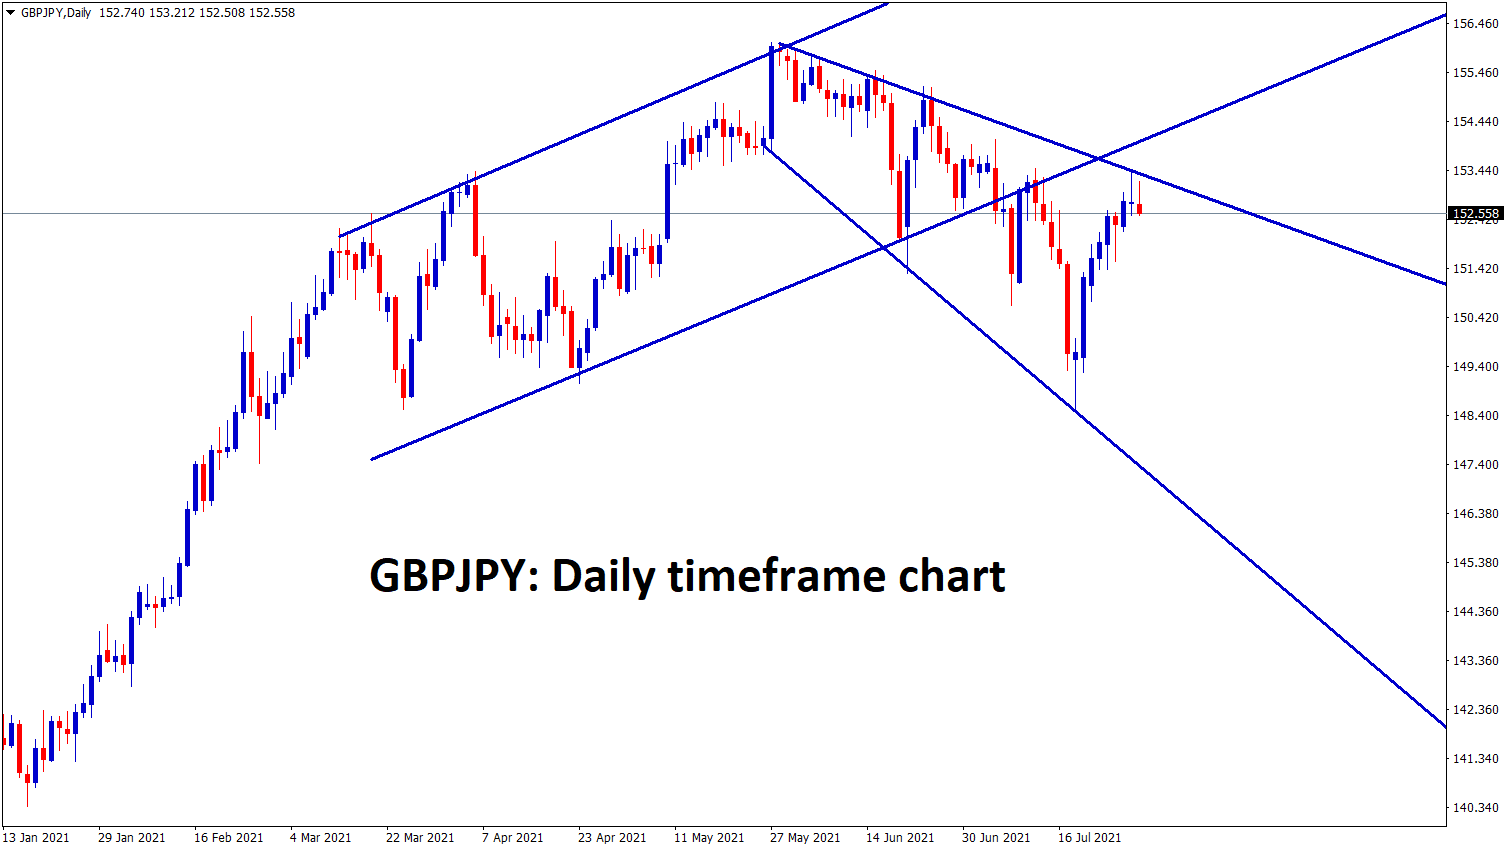 GBPJPY is ranging at the lower high zone of the downtrend line and expanding triangle pattern